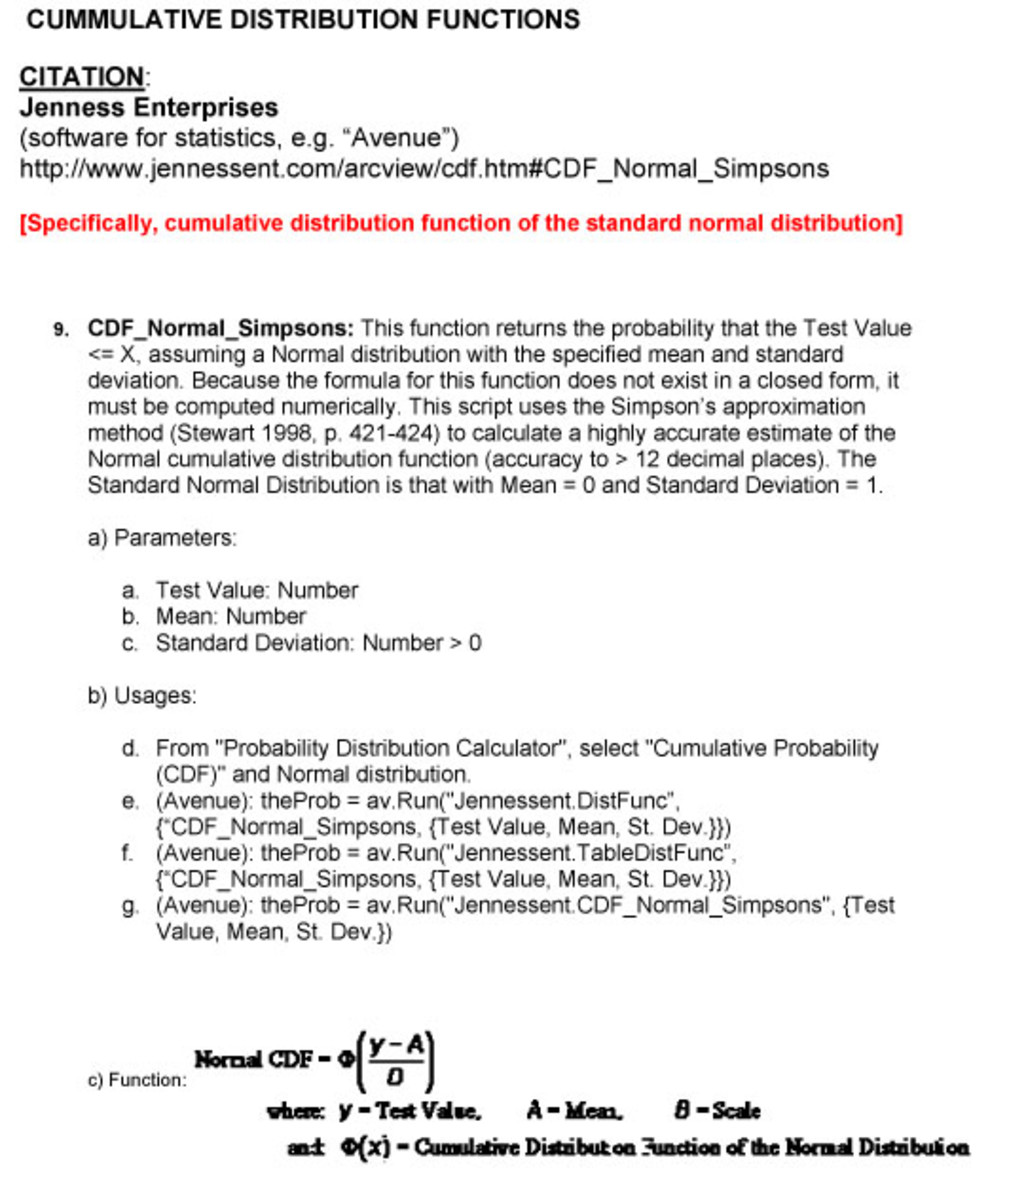 This is another useful software program to use for the CDF: Jenness Enterprises Software.